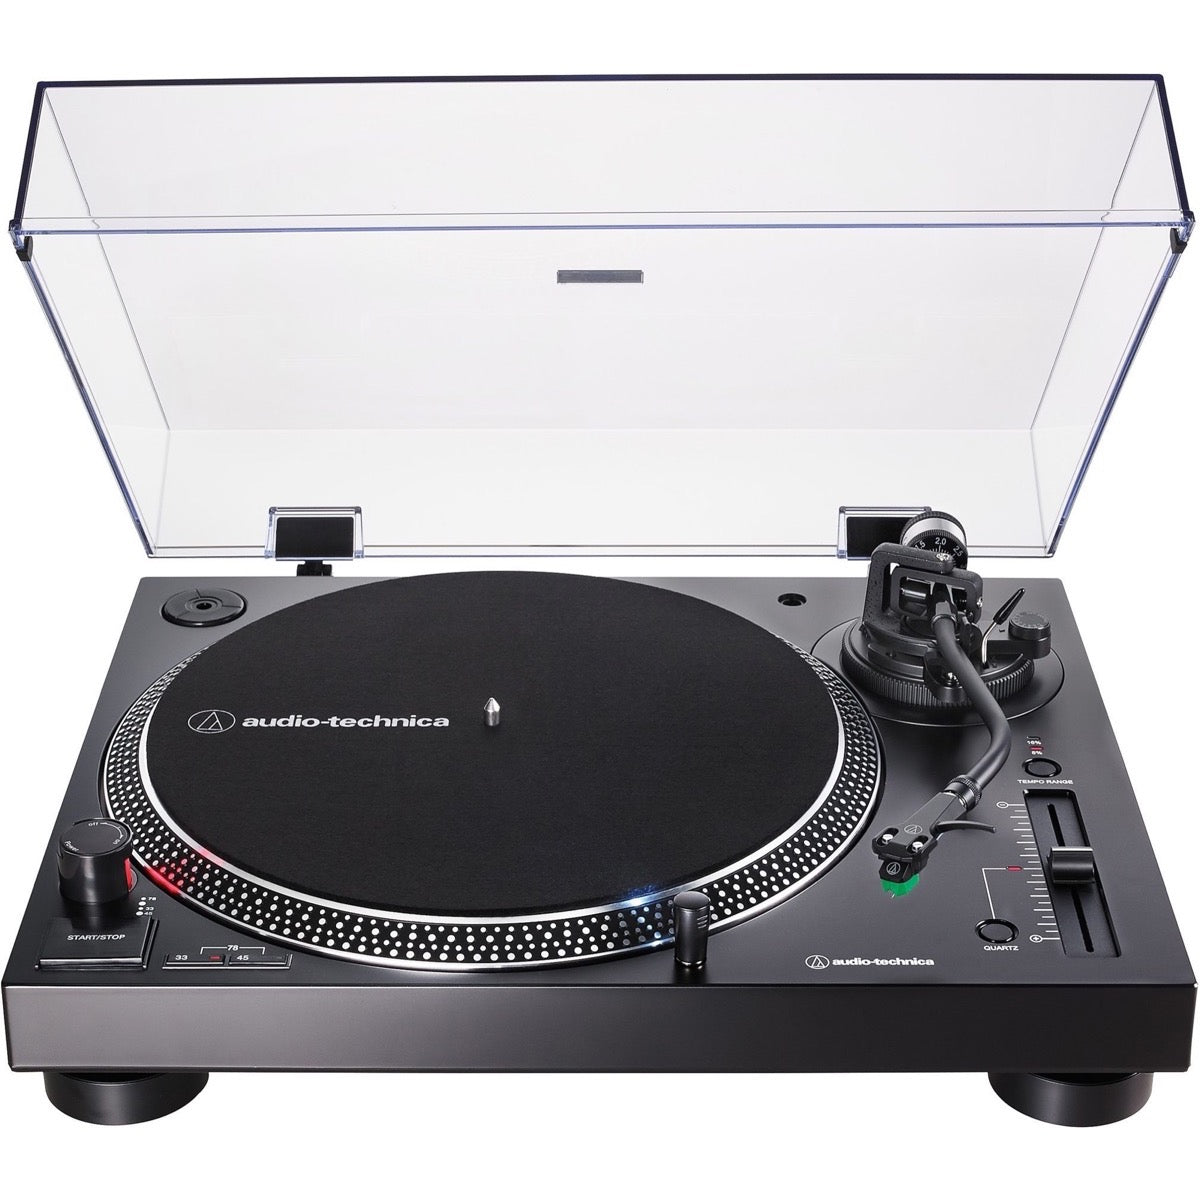 Audio-Technica AT-LP120XUSB Direct-Drive Turntable, Black